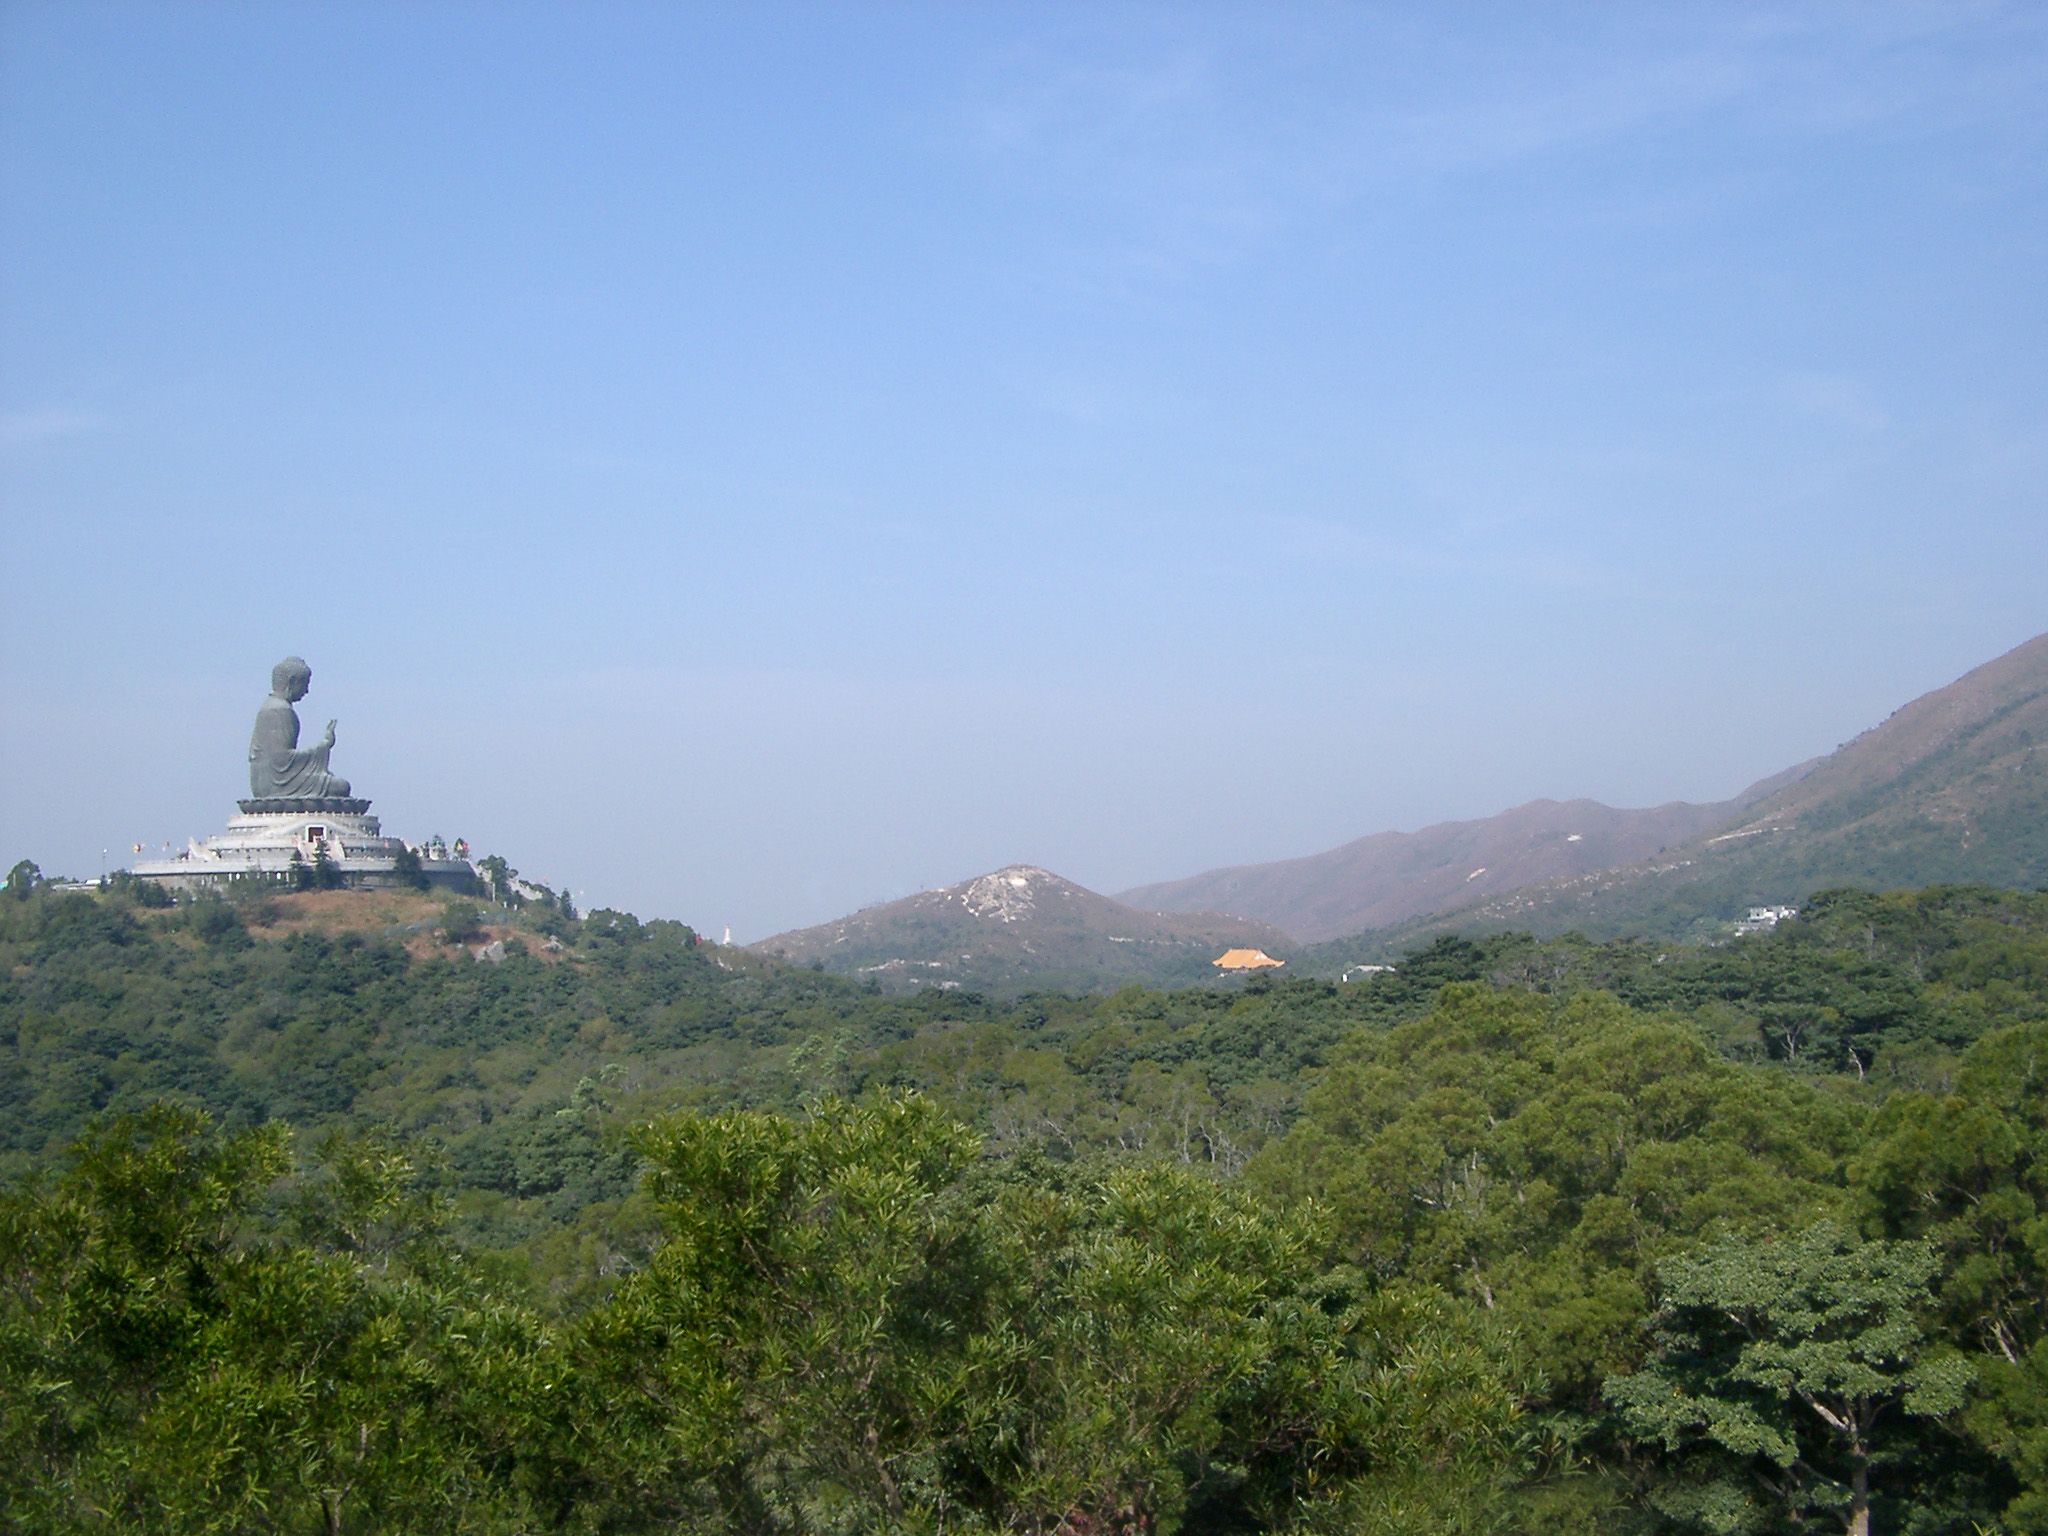 Tian Tan Buddha, also known as the Big Buddha, is a large bronze statue of a Buddha Amoghasiddhi on Ngong Ping, Lantau Island, in Hong Kong.